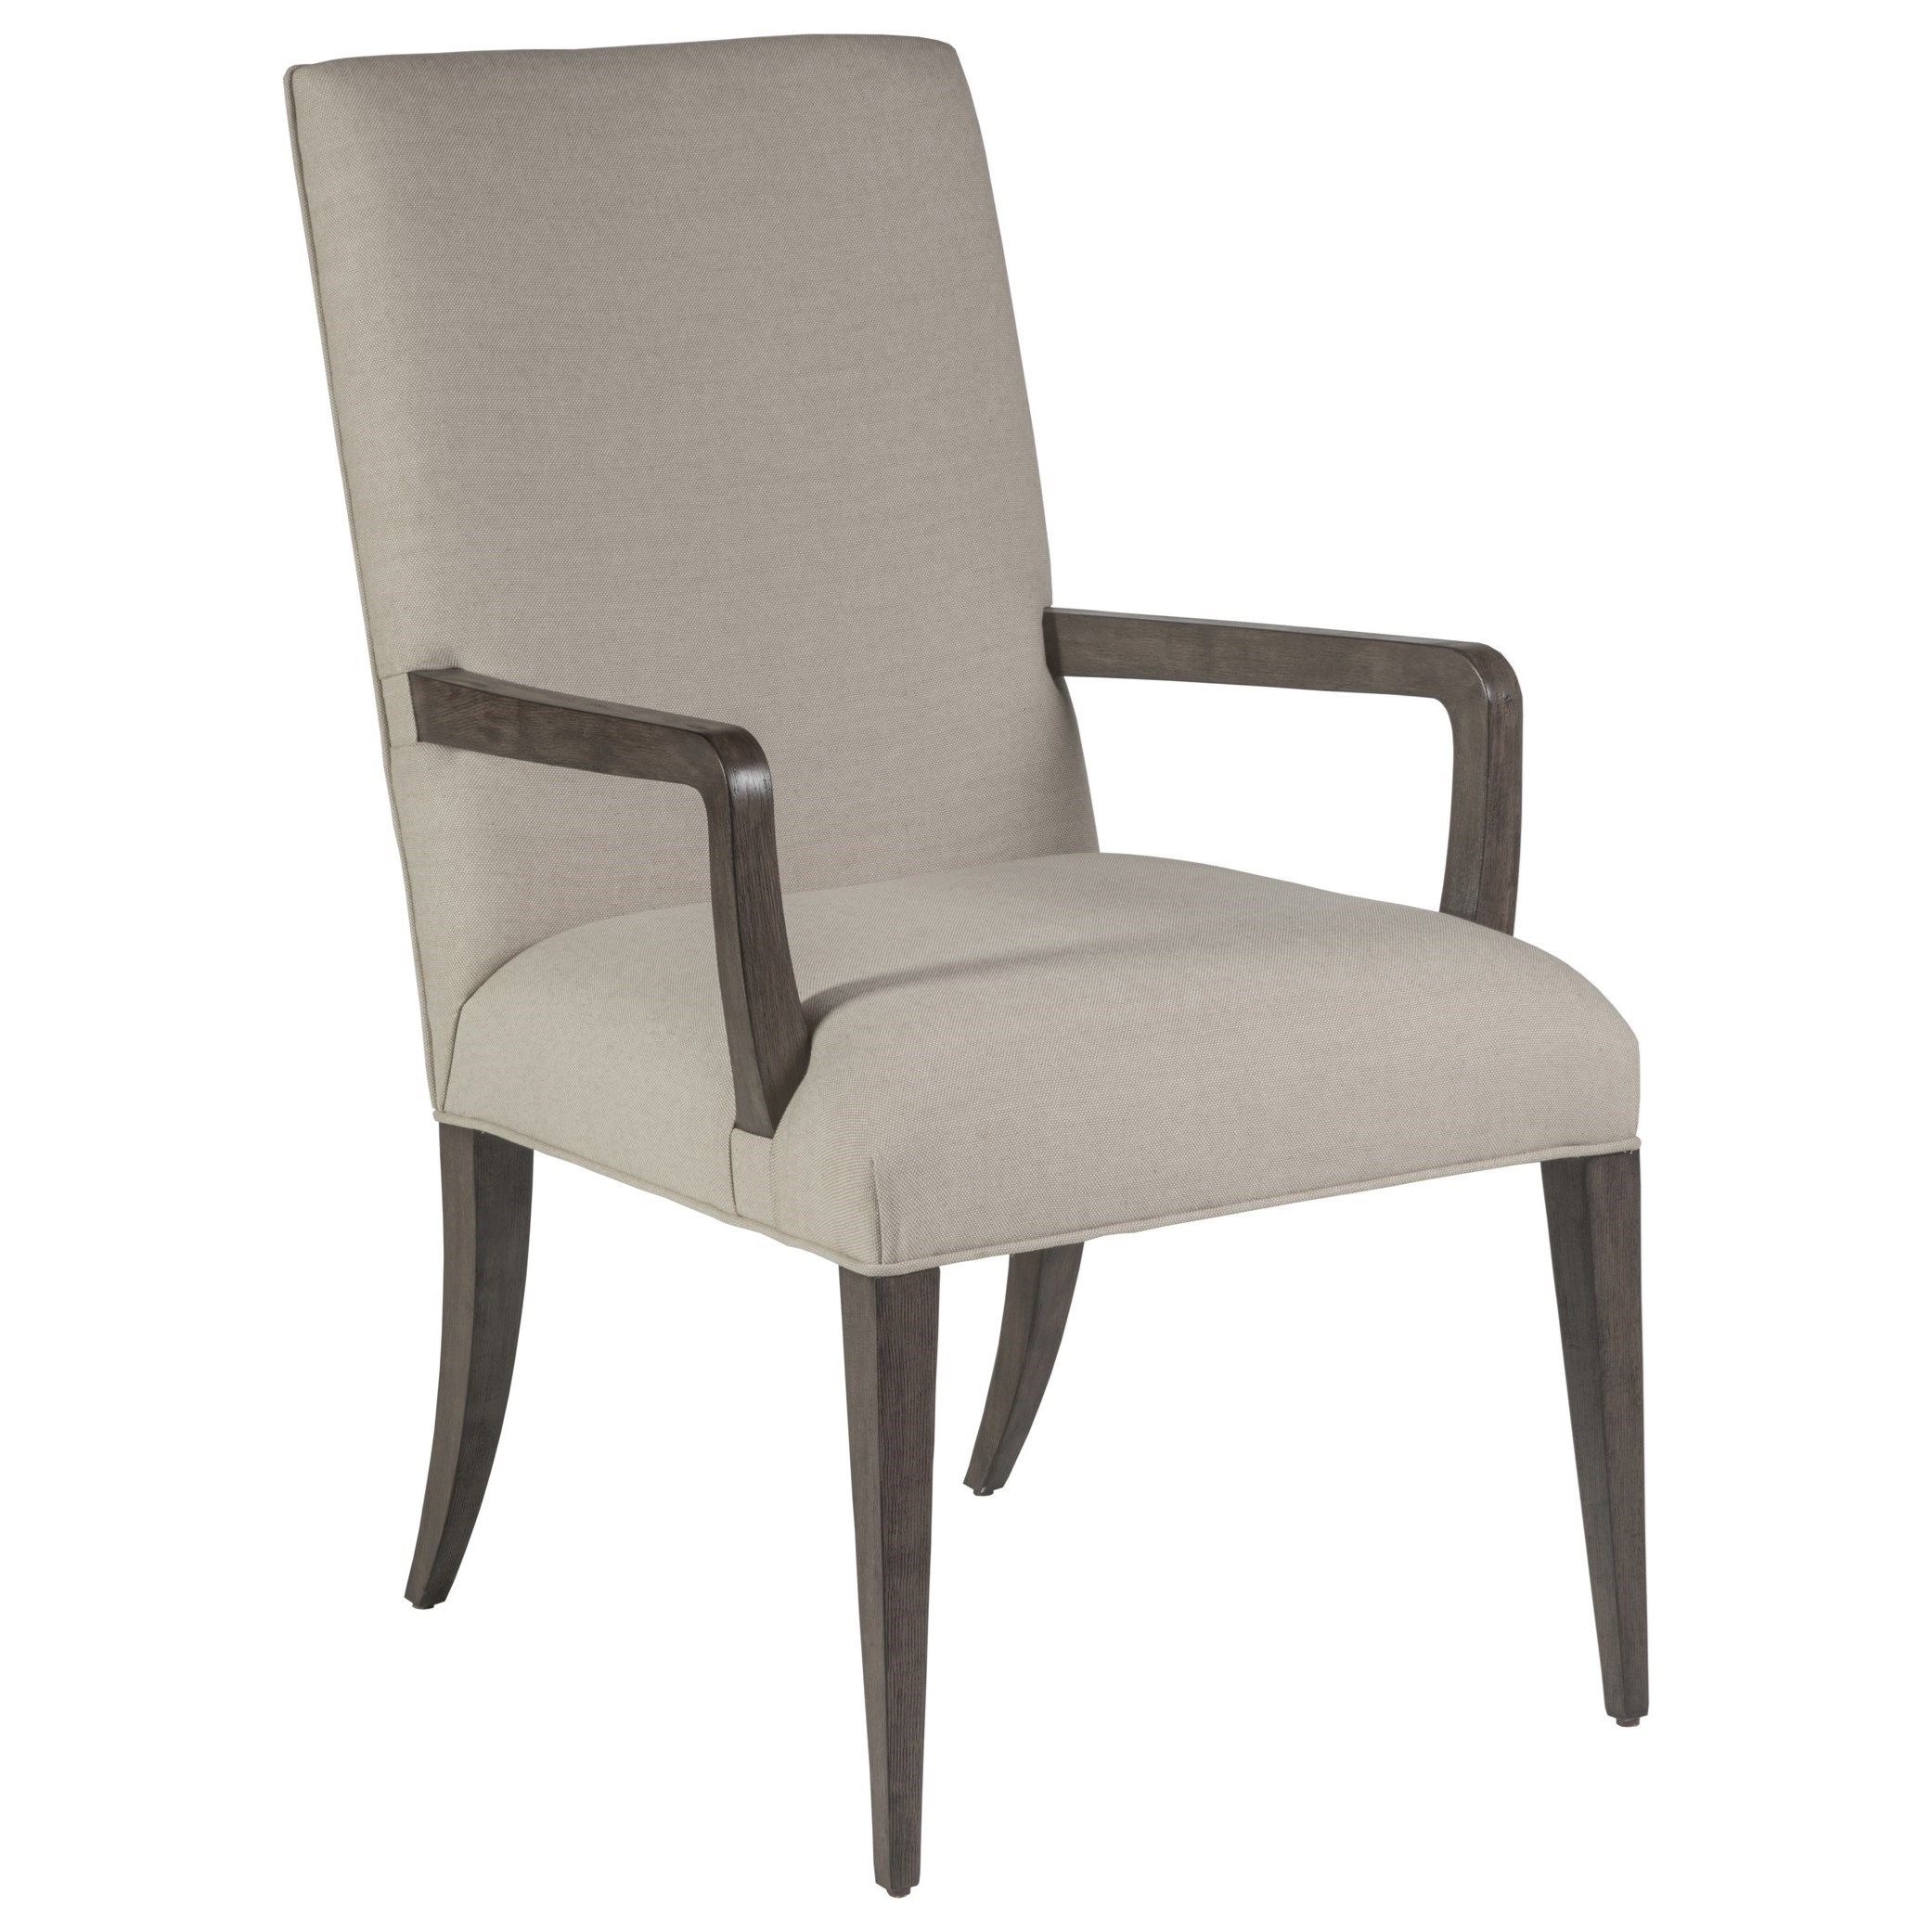 Cohesion Madox Upholstered Arm Chair by Artistica at Baer's Furniture